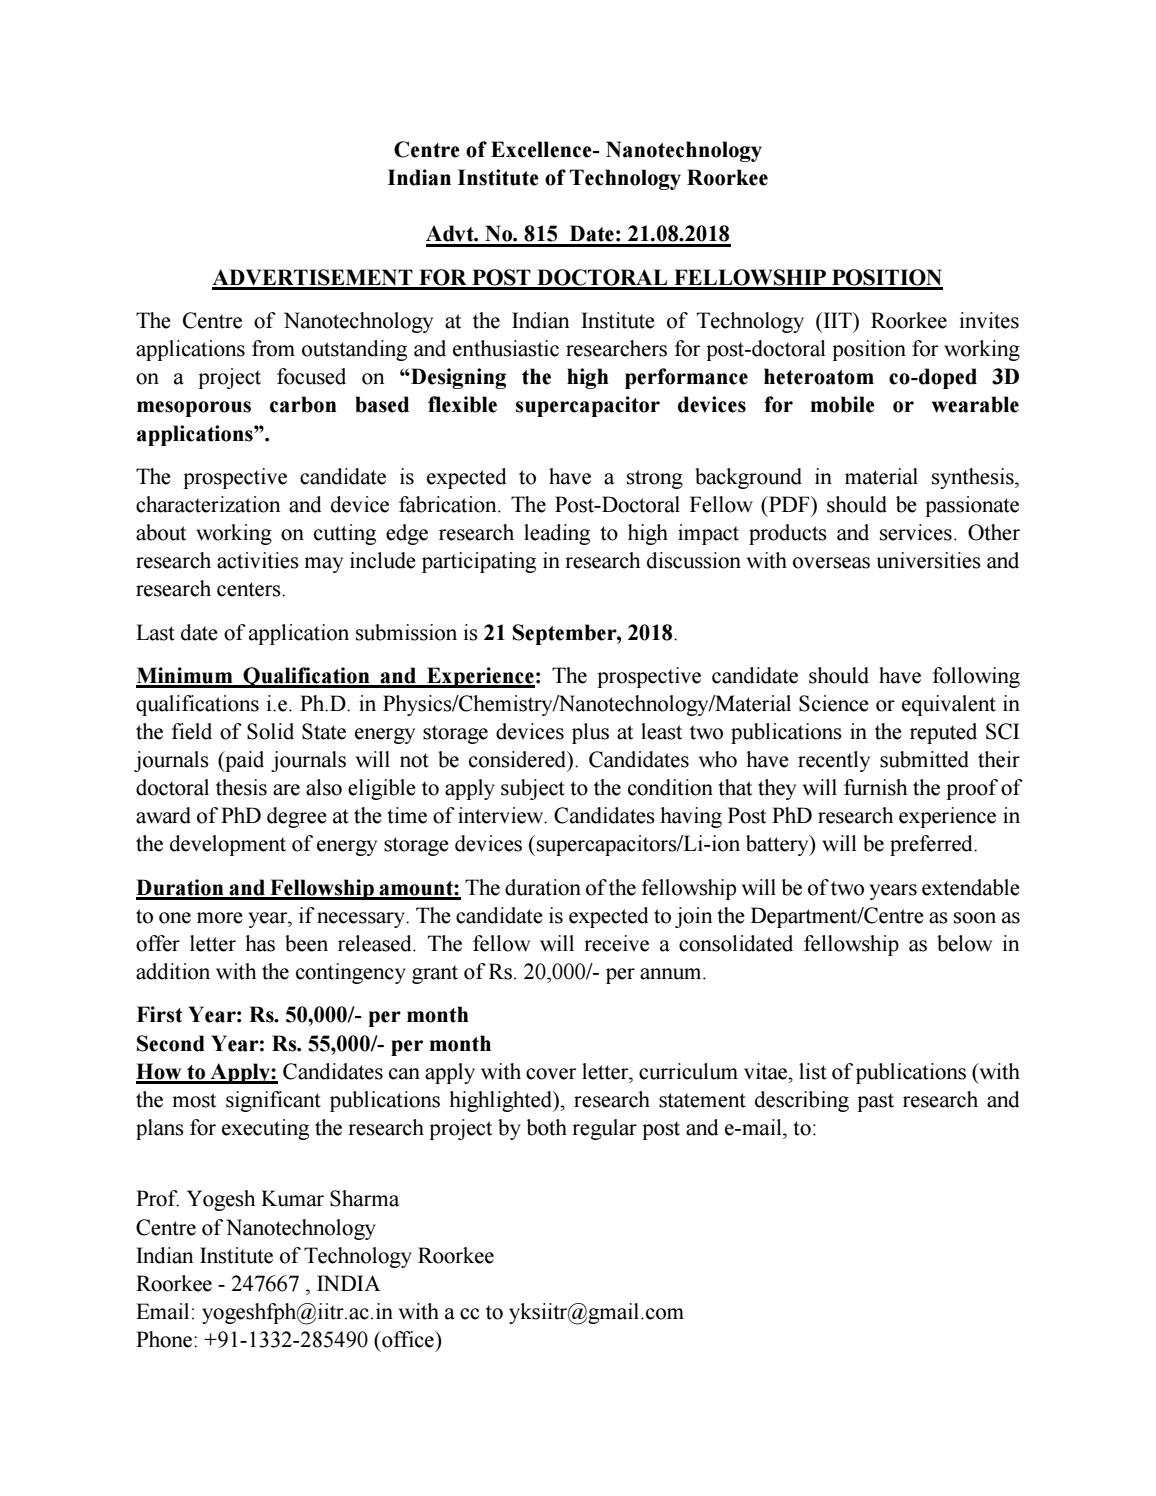 Postdoctoral Fellow Vacancy @ Indian Institute of Technology